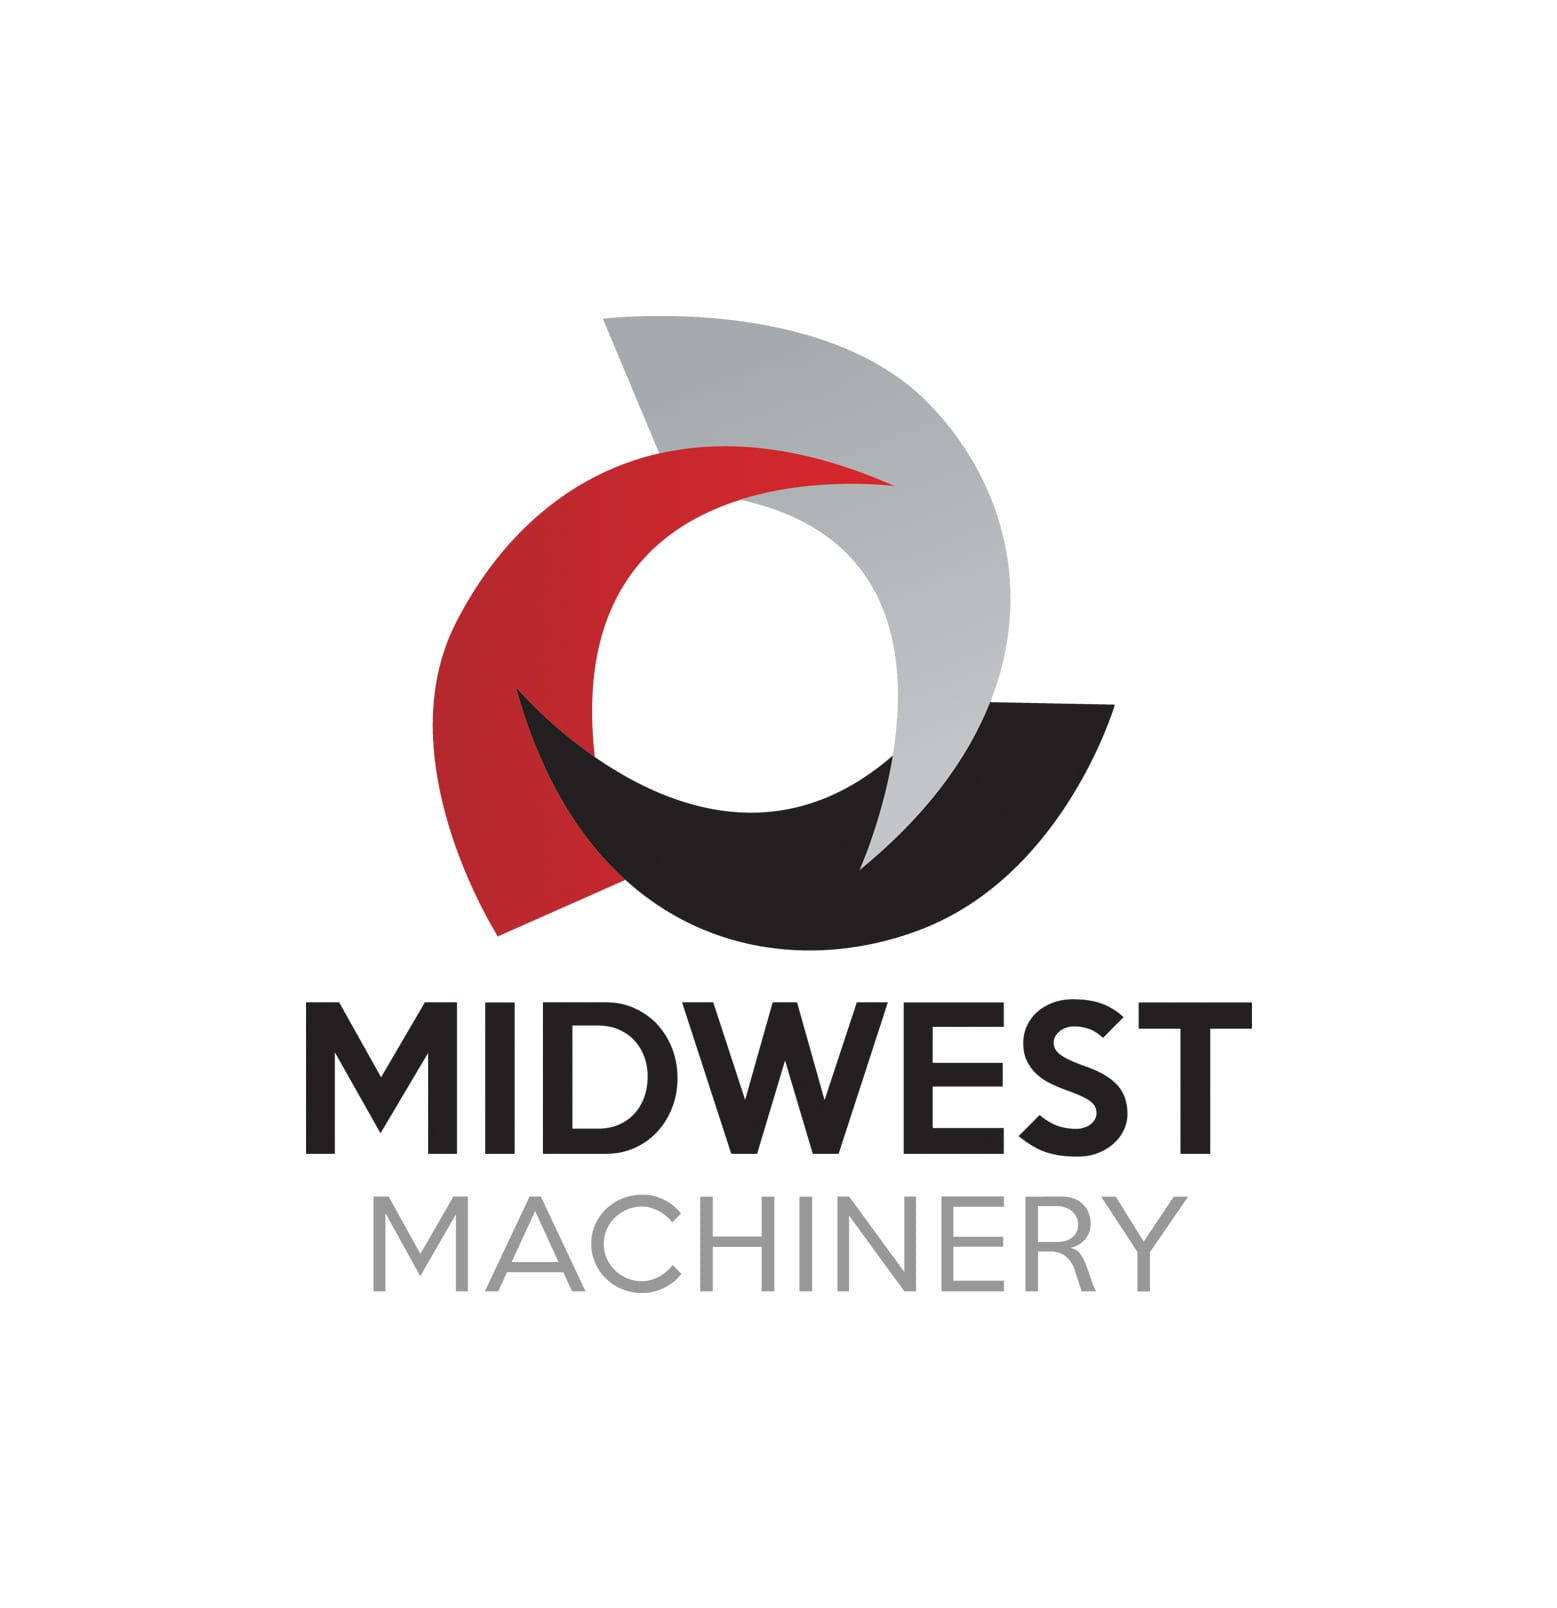 Print Midwest Machinery